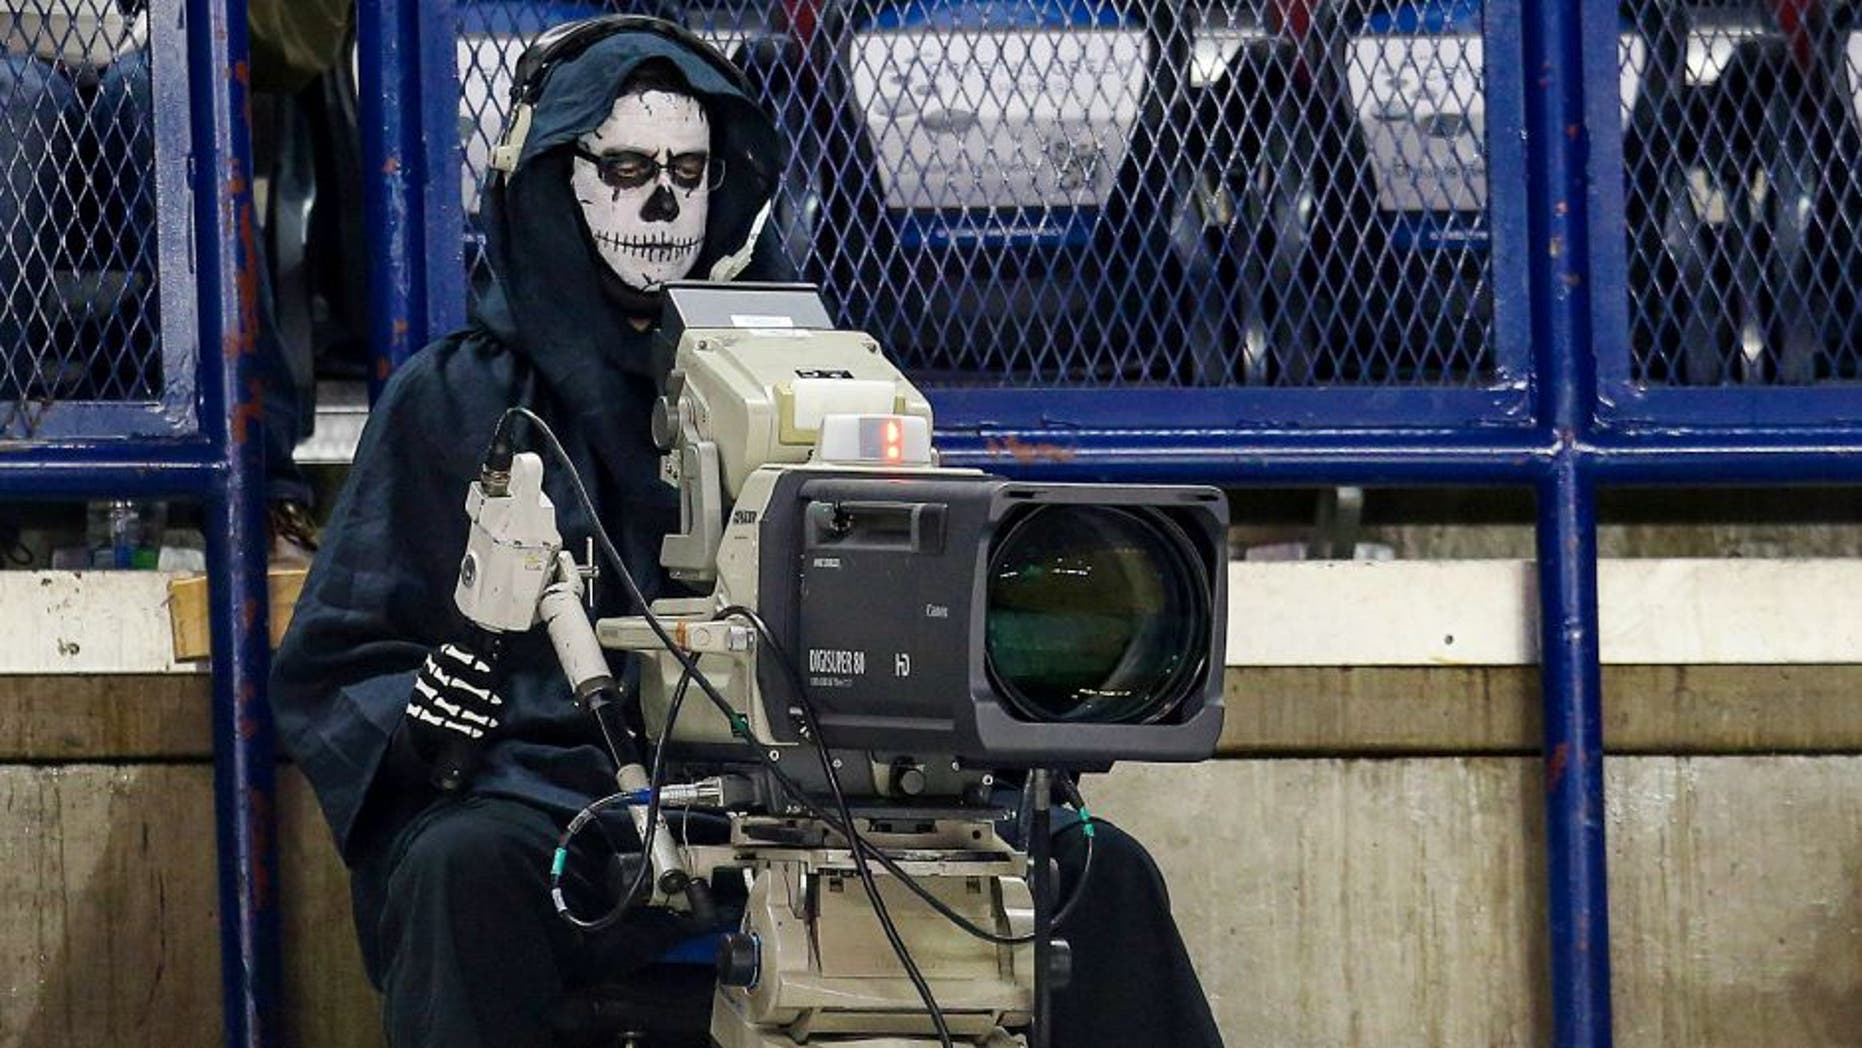 Oct 31, 2014; Calgary, Alberta, CAN; Camera man dressed up for Halloween prior to the game between the Calgary Flames and the Nashville Predators at Scotiabank Saddledome. Calgary Flames won 4-3. Mandatory Credit: Sergei Belski-USA TODAY Sports